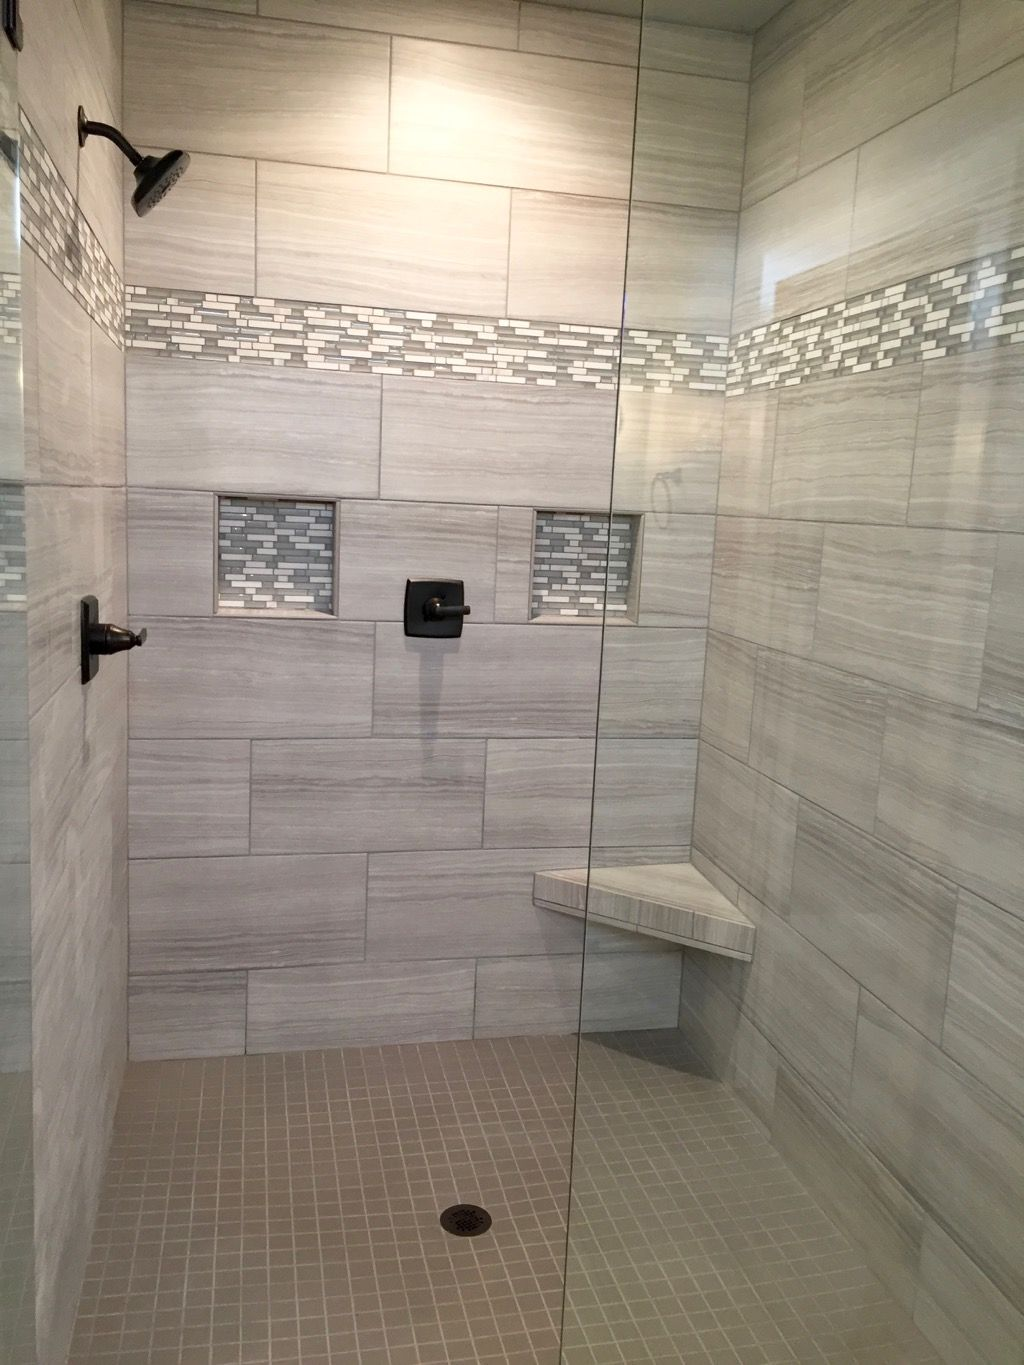 how to determine the bathroom shower ideas shower stall ideas who needs a spa day when you have a bathroom like this this walk